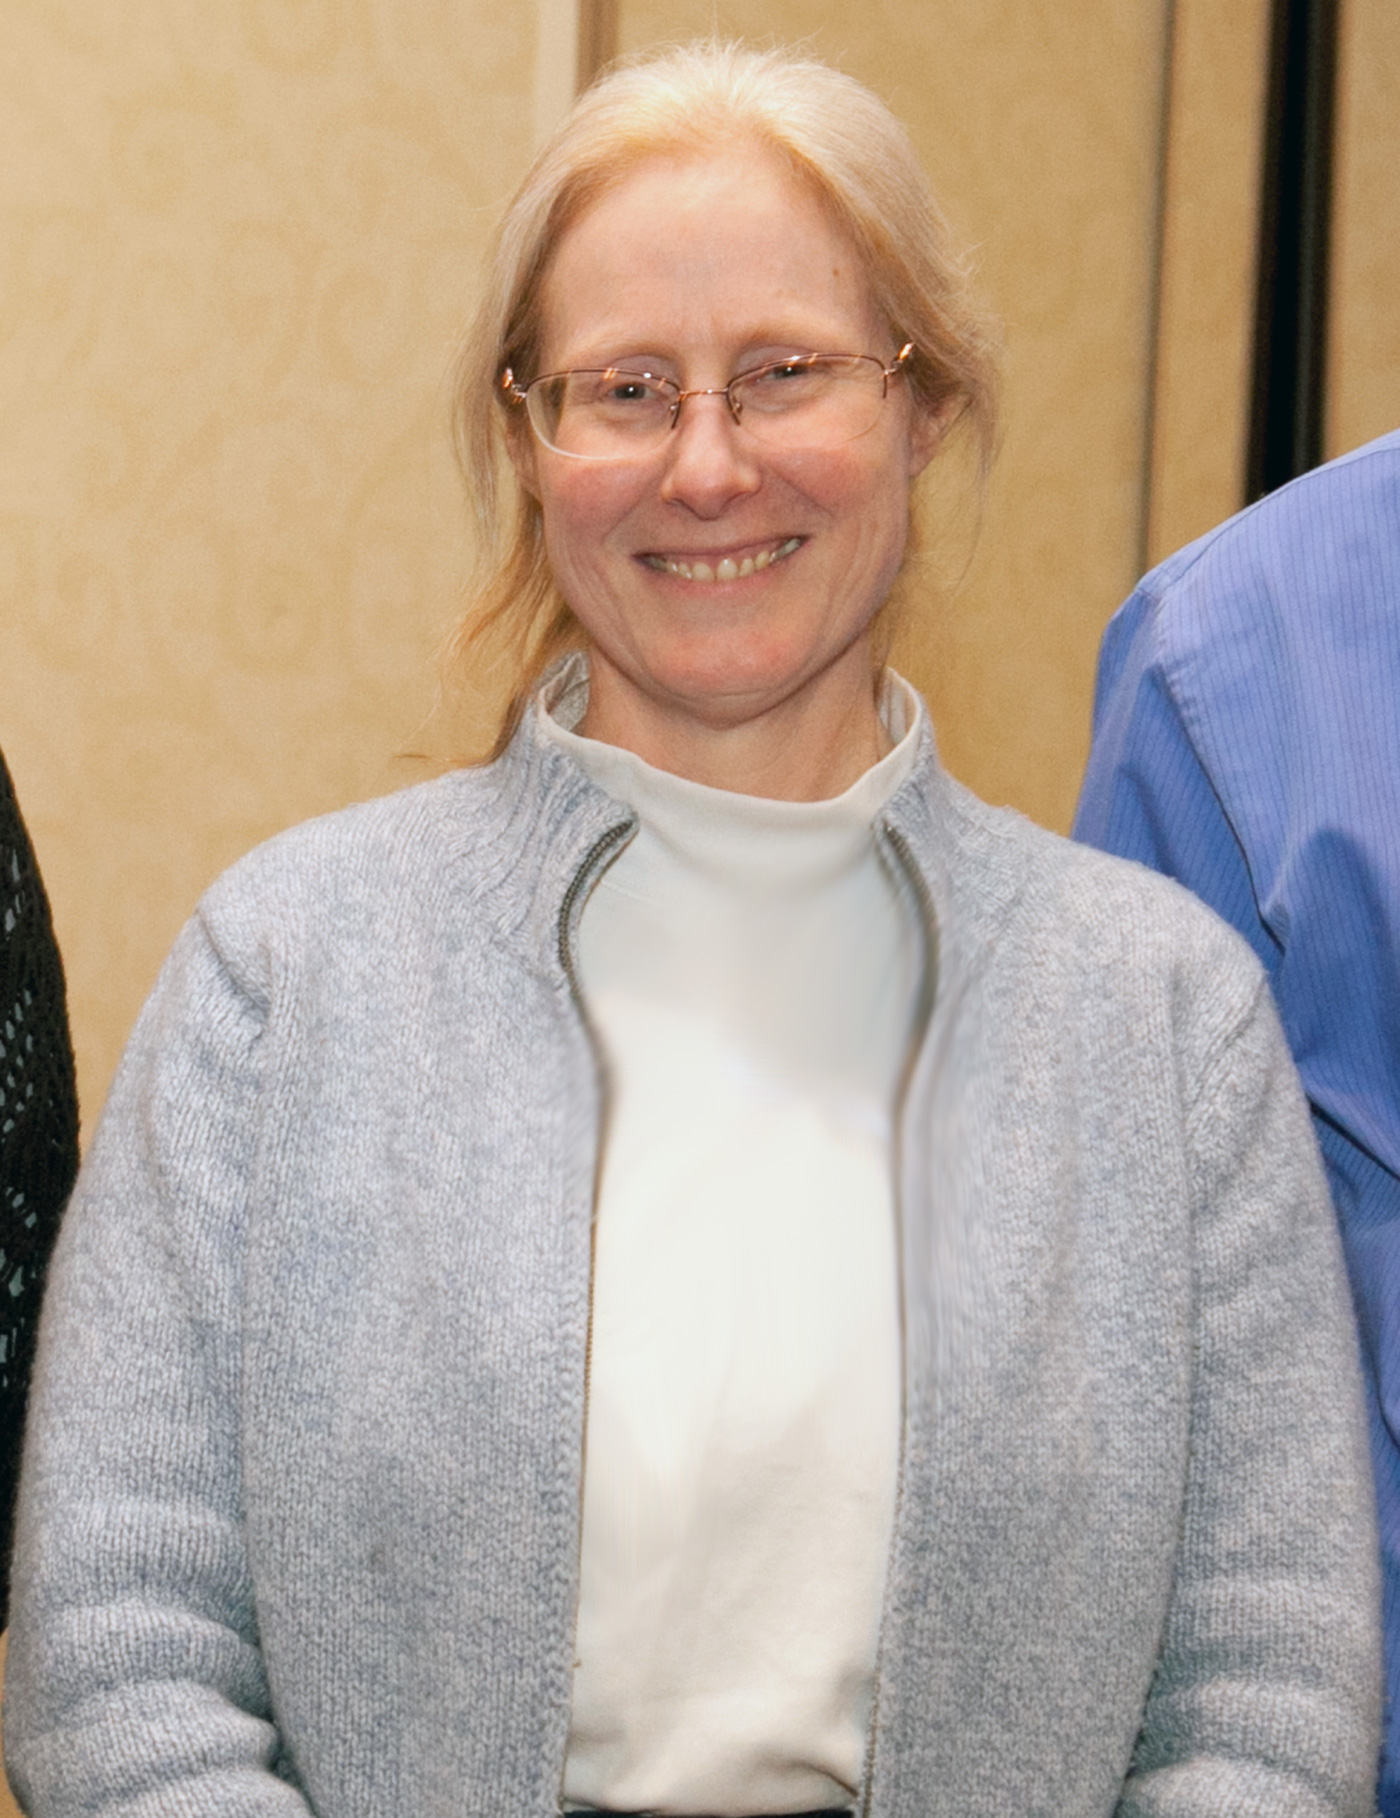 Nancy Goodyear, Ph.D., MLS(ASCP)CM